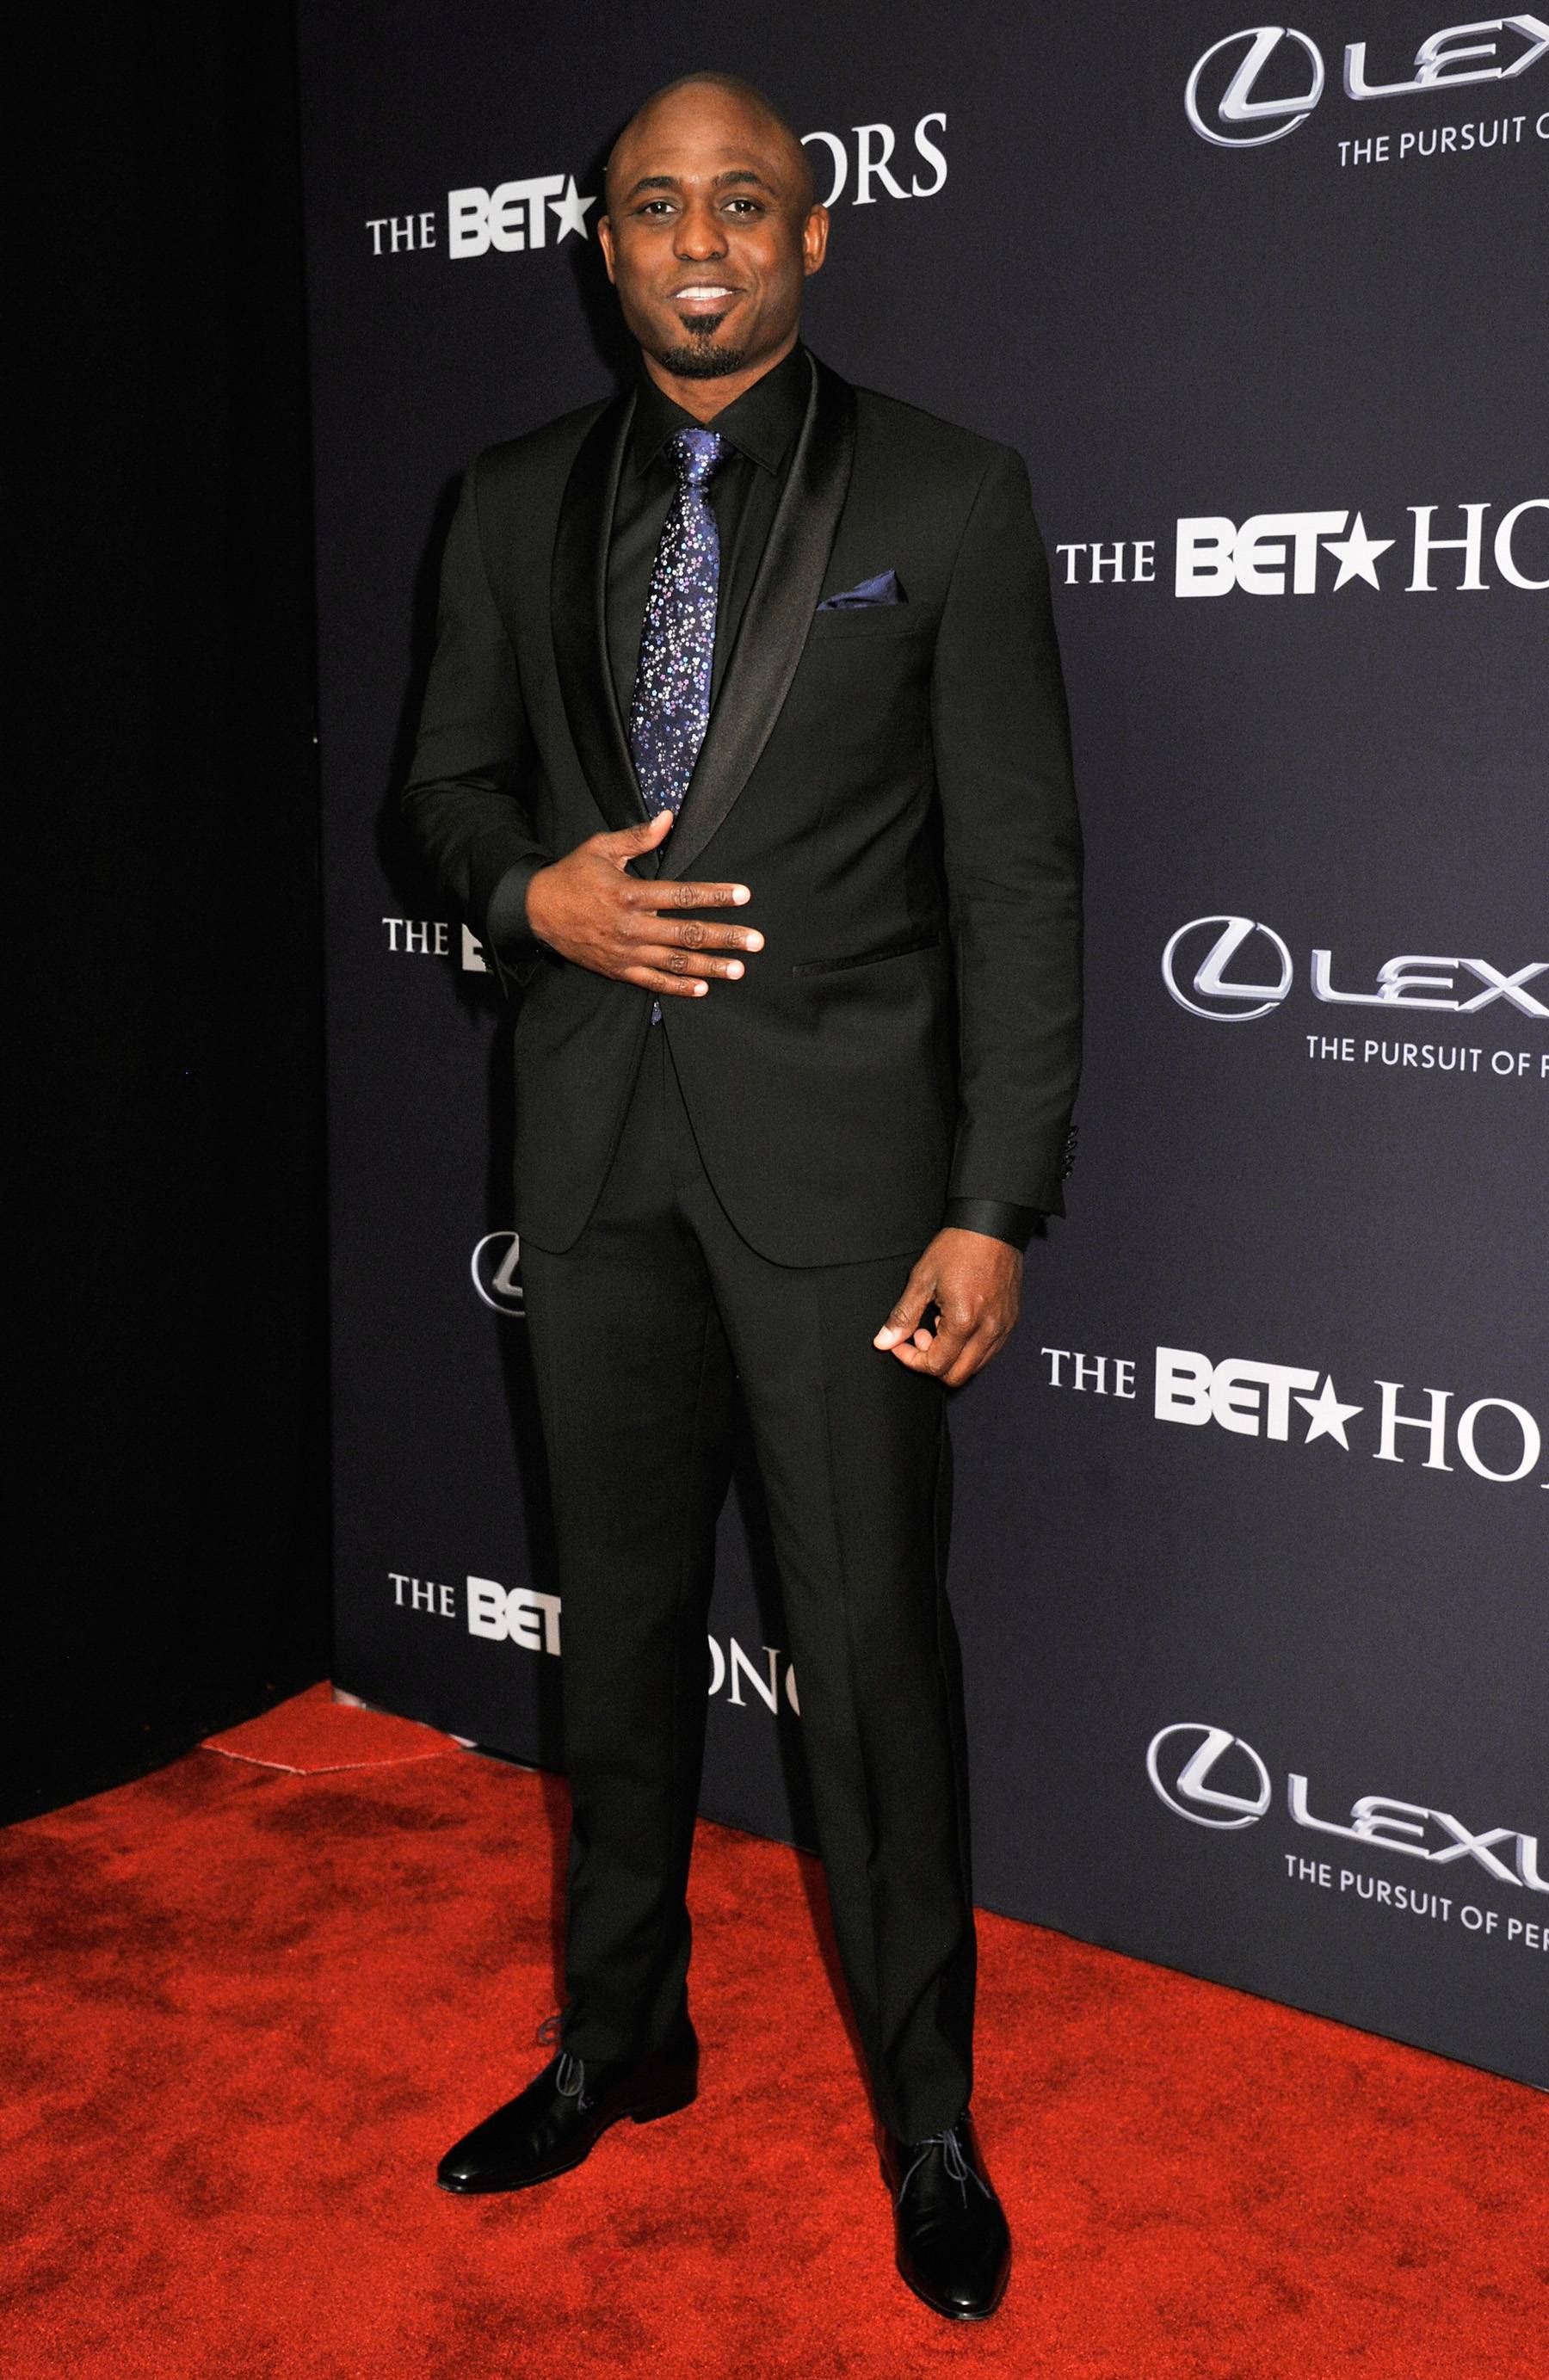 The Renaissance Man  - The BET Honors 15 host and funny manWayne Brady is dashing and cool as he walks the carpet. (Photo: Kris Connor/BET/Getty Images for BET)